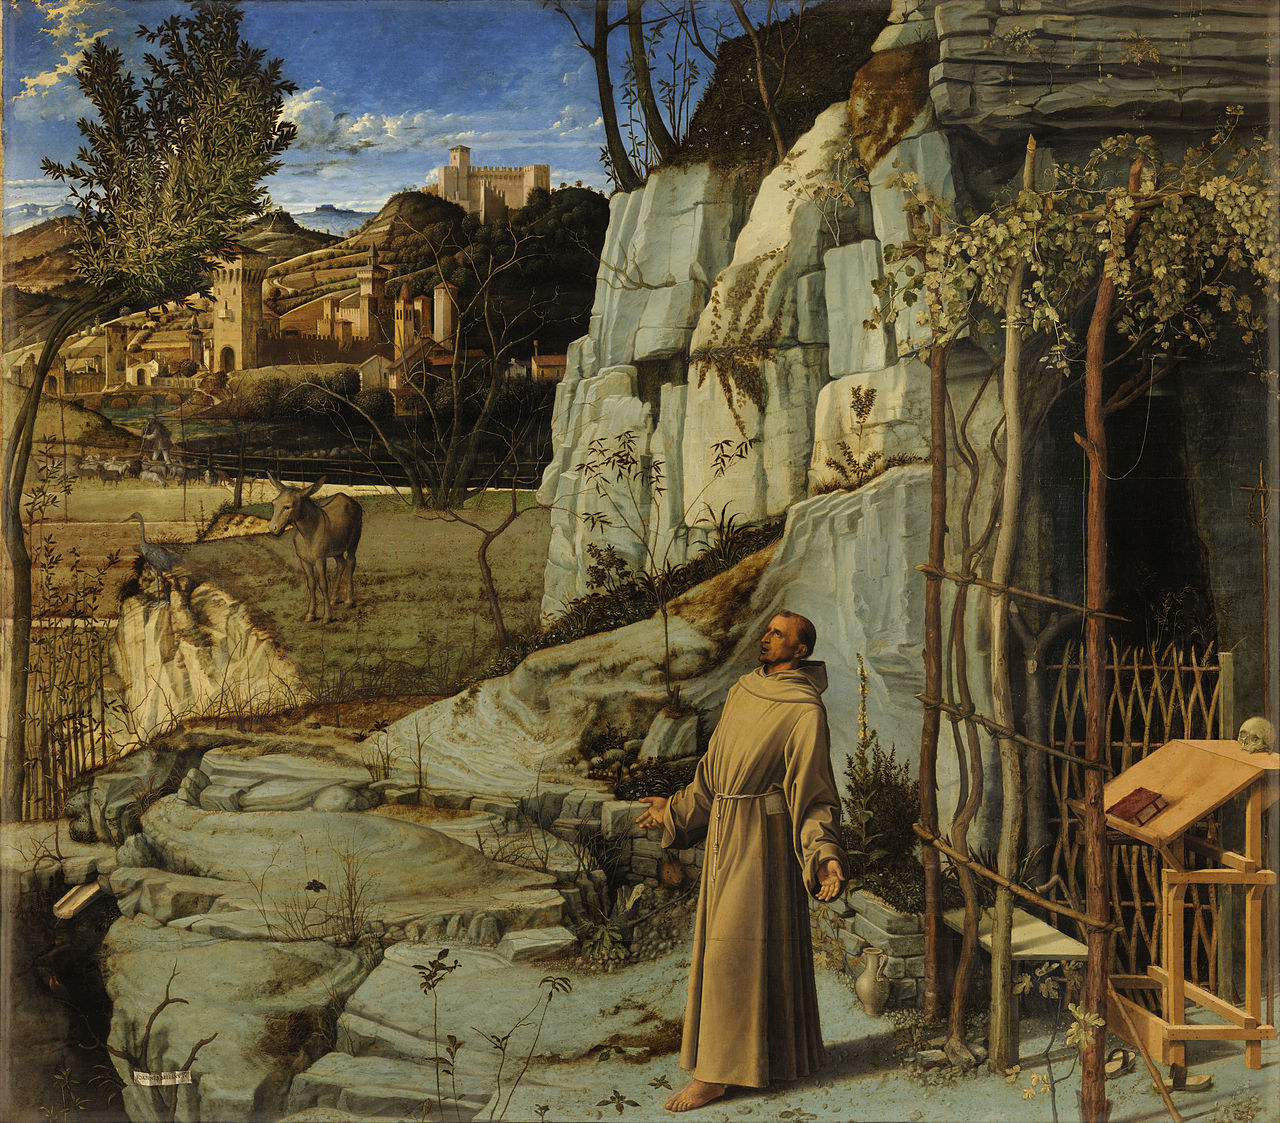 Giovanni Bellini, St. Francis in the Desert